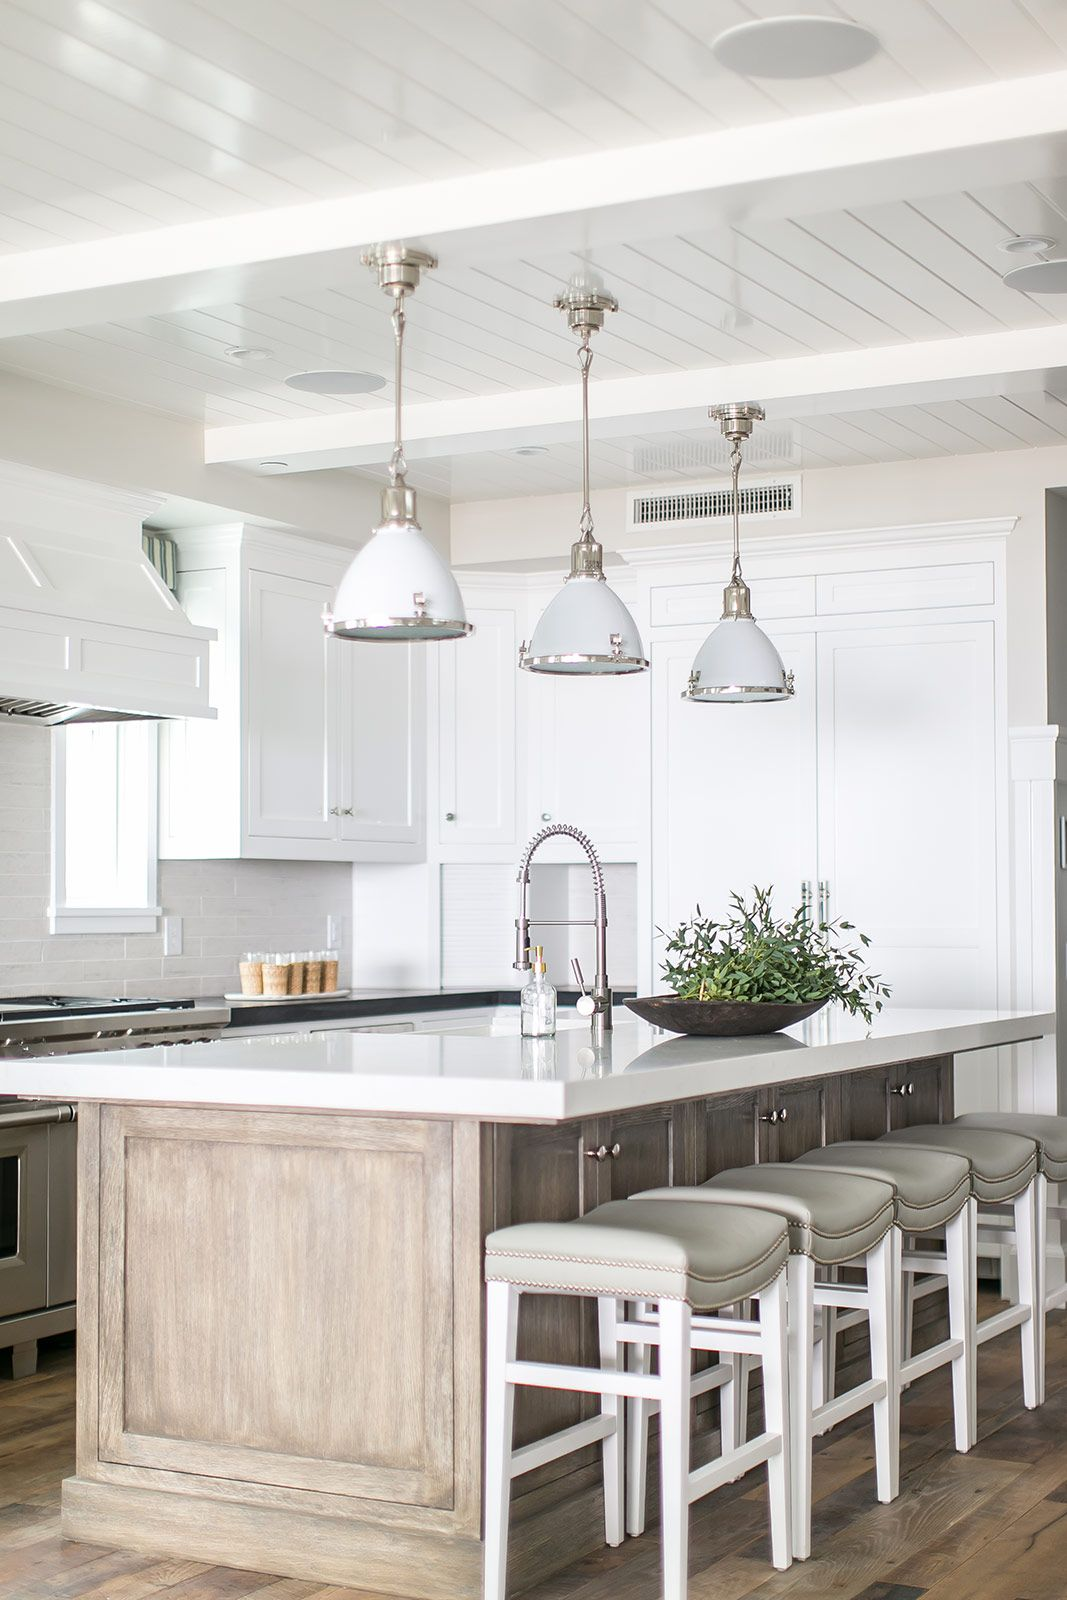 Kitchen Island Cabinets Both Sides White Kitchen Design With Light Wooden Cabinets And